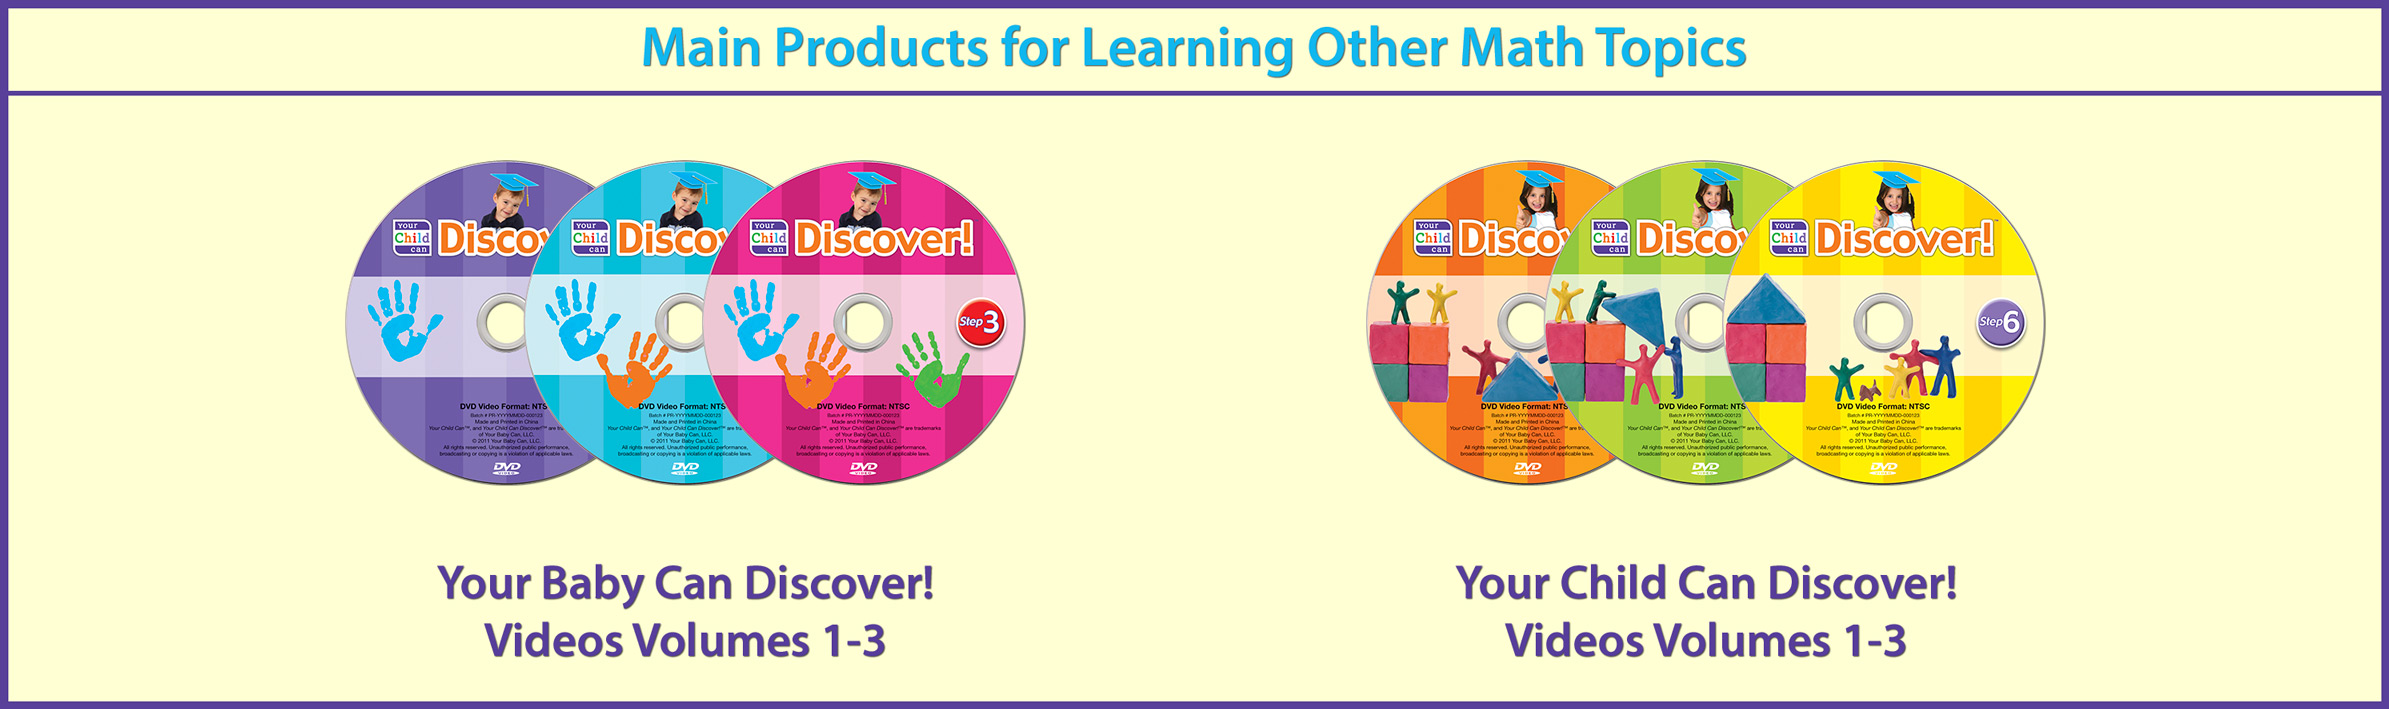 Main Products for Learning Other Math Topics